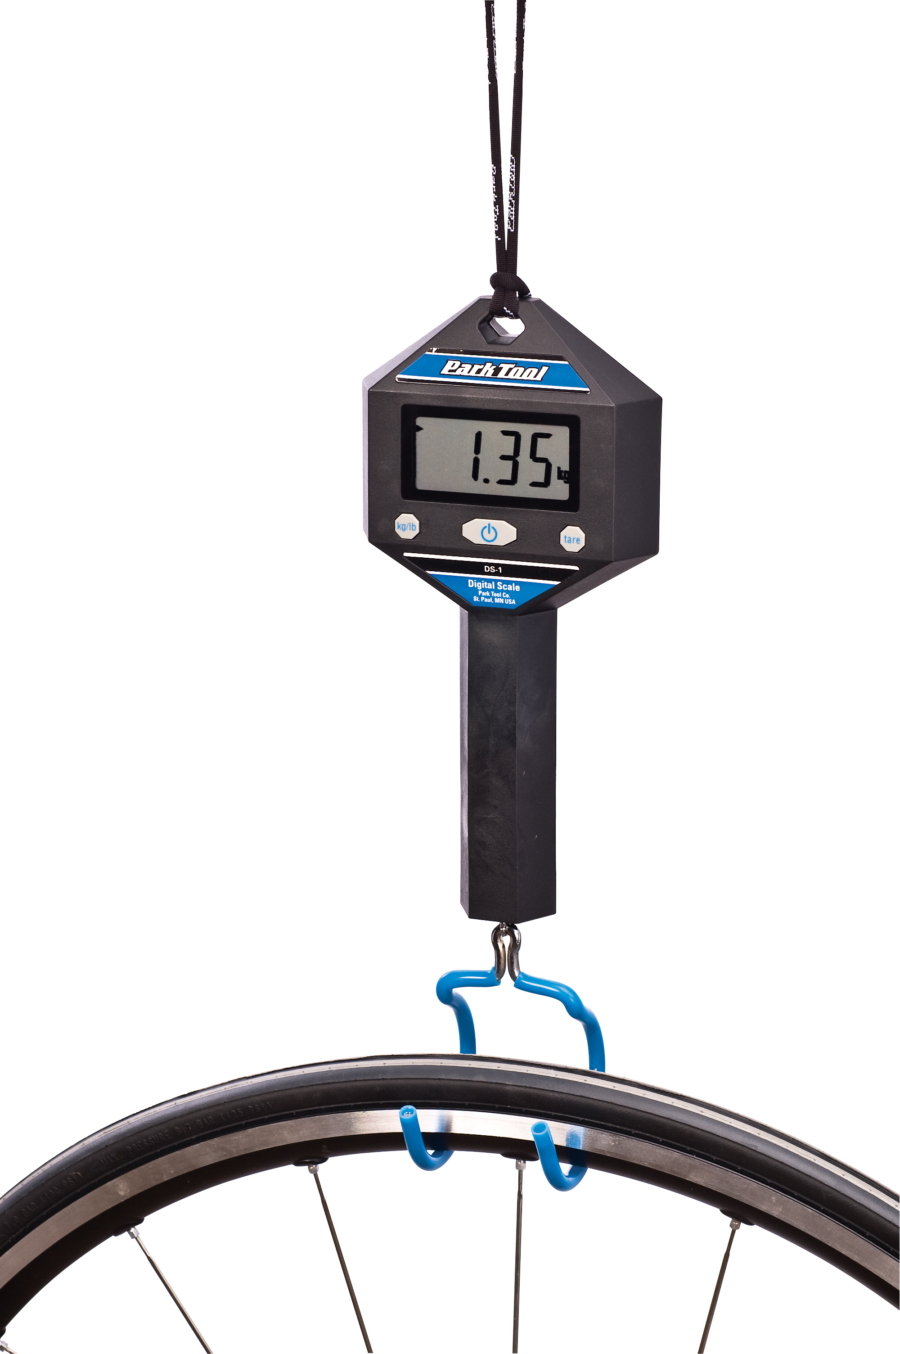 The Park Tool DS-1 Digital Scale holding bike wheel, enlarged